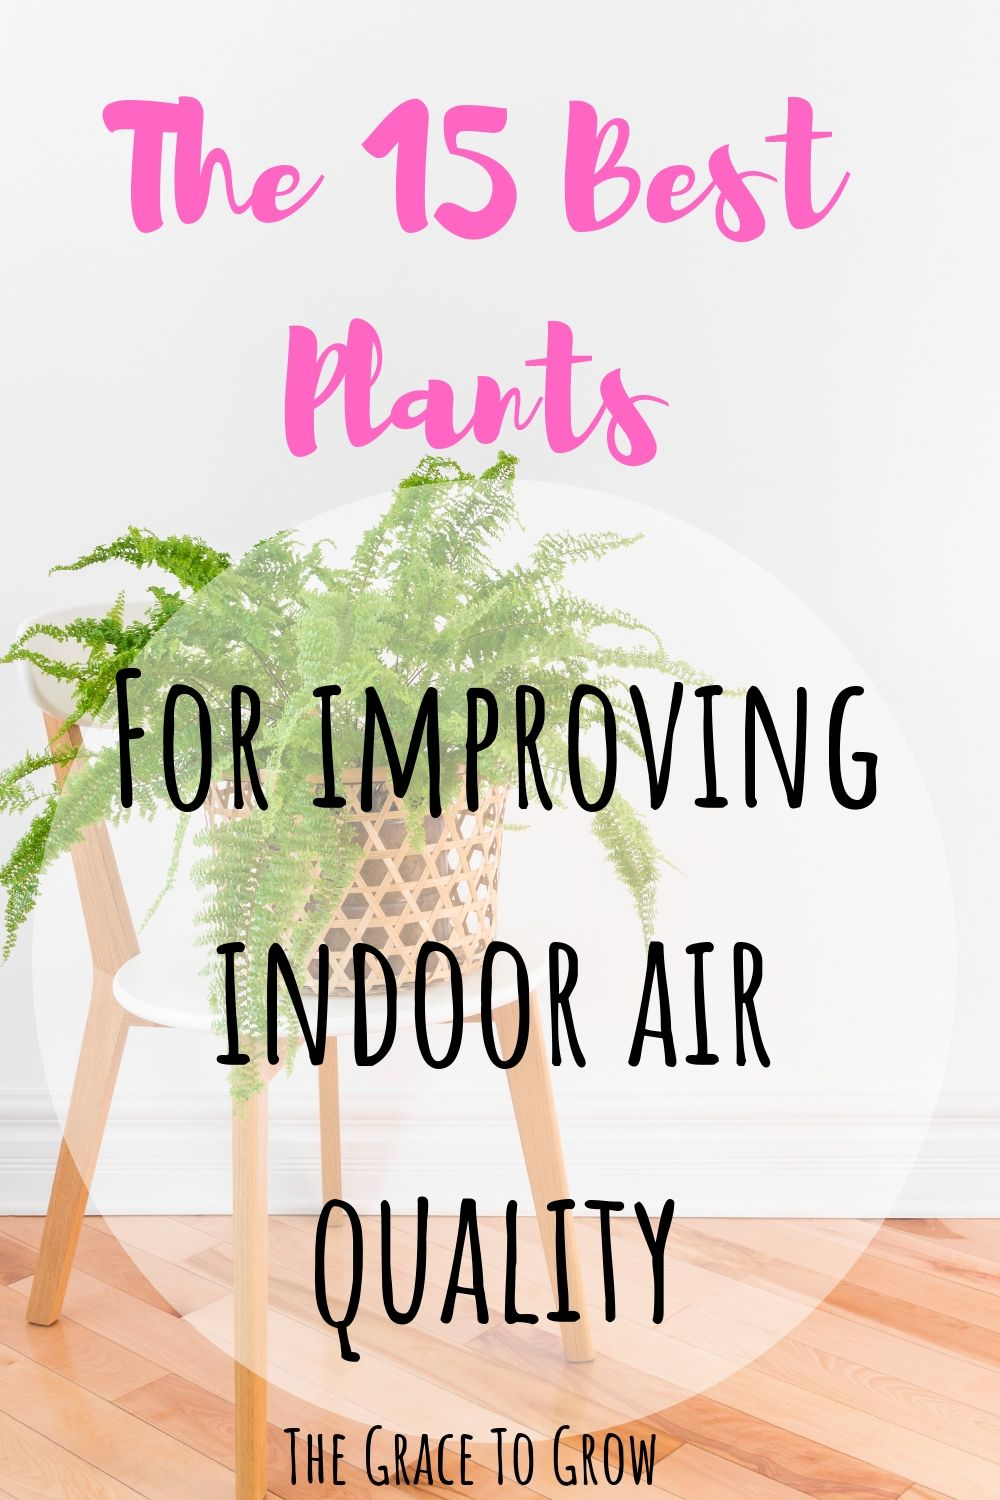 plants-for-improving-indoor-air-quality-pinterest-pin-with-boston-fern